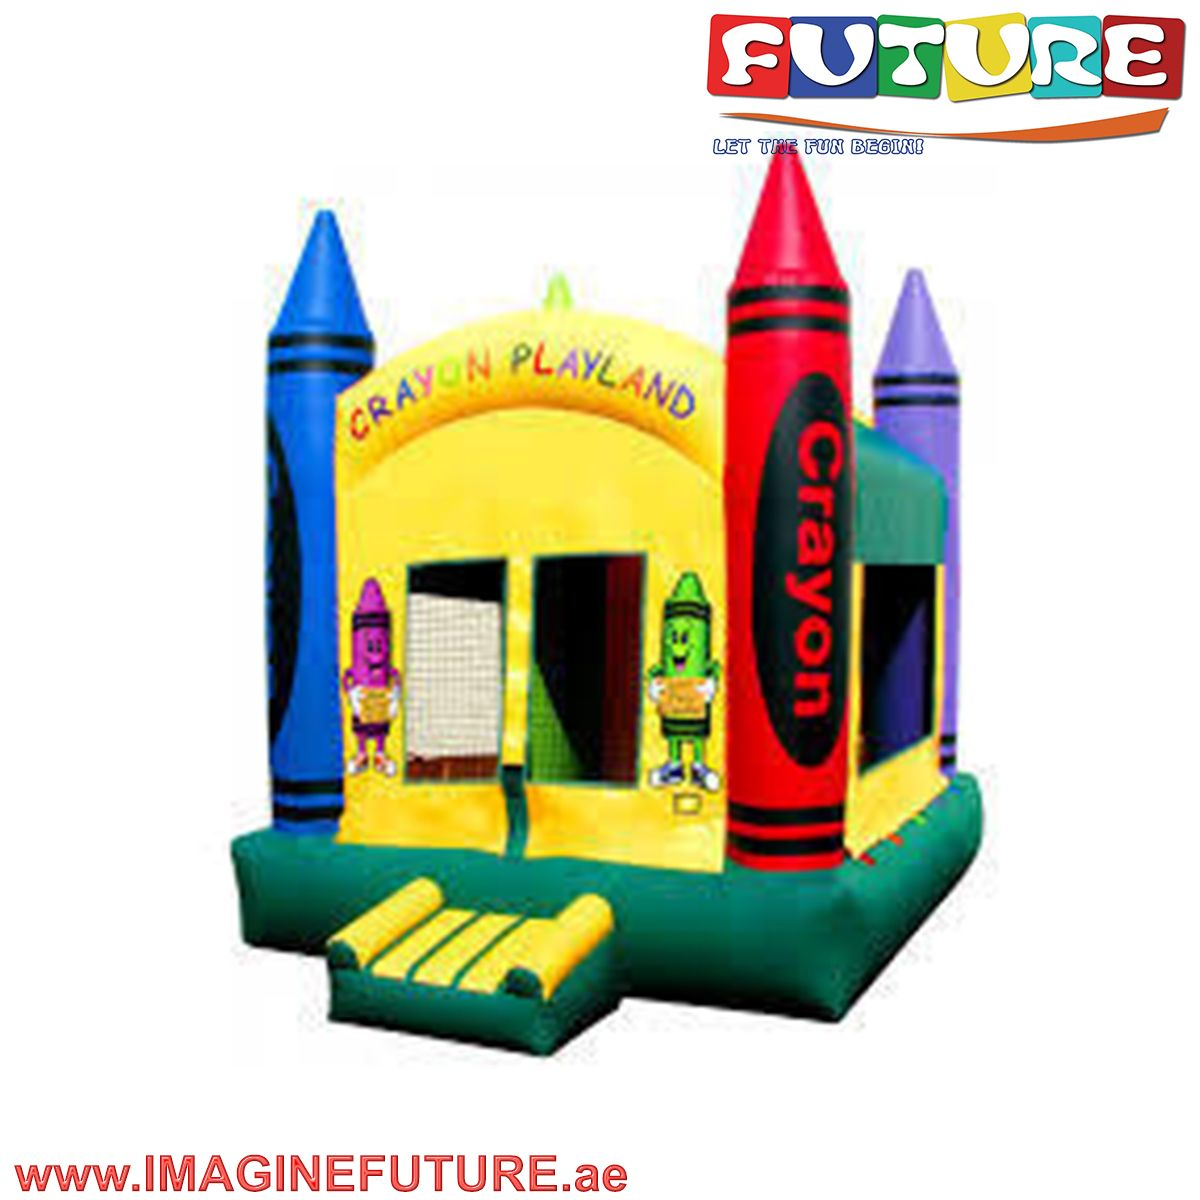 We offer the largest variety of animations and theme parties; we have very competitive prices with the best guarantees. :-  Imagine Future Exhibition Organizing http://bit.ly/1MI7odu T: 042 6777 89 Info@imaginefuture.ae  #ImagineFuture #DubaiEvents #GovernmentProjects #CorporateEvents #HouseParties #SchoolParties #SchoolProjects #MallPromotions #KidsParties #BirthdayParties #UAEEvents   #ImagineFutureEventsDubai